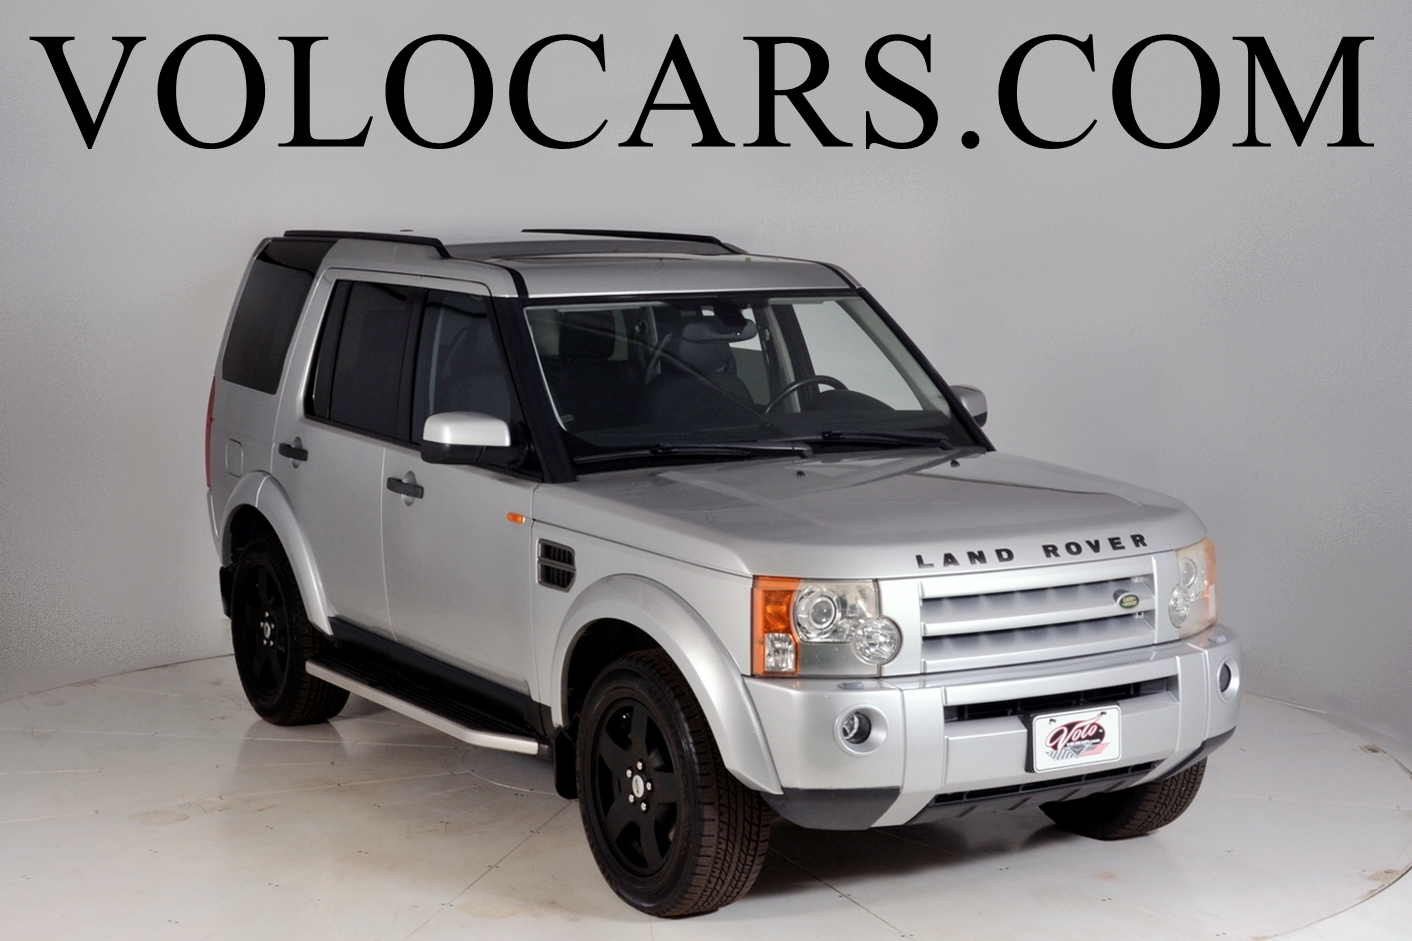 rovers sale challenge pinterest pin landrover spec rover for land